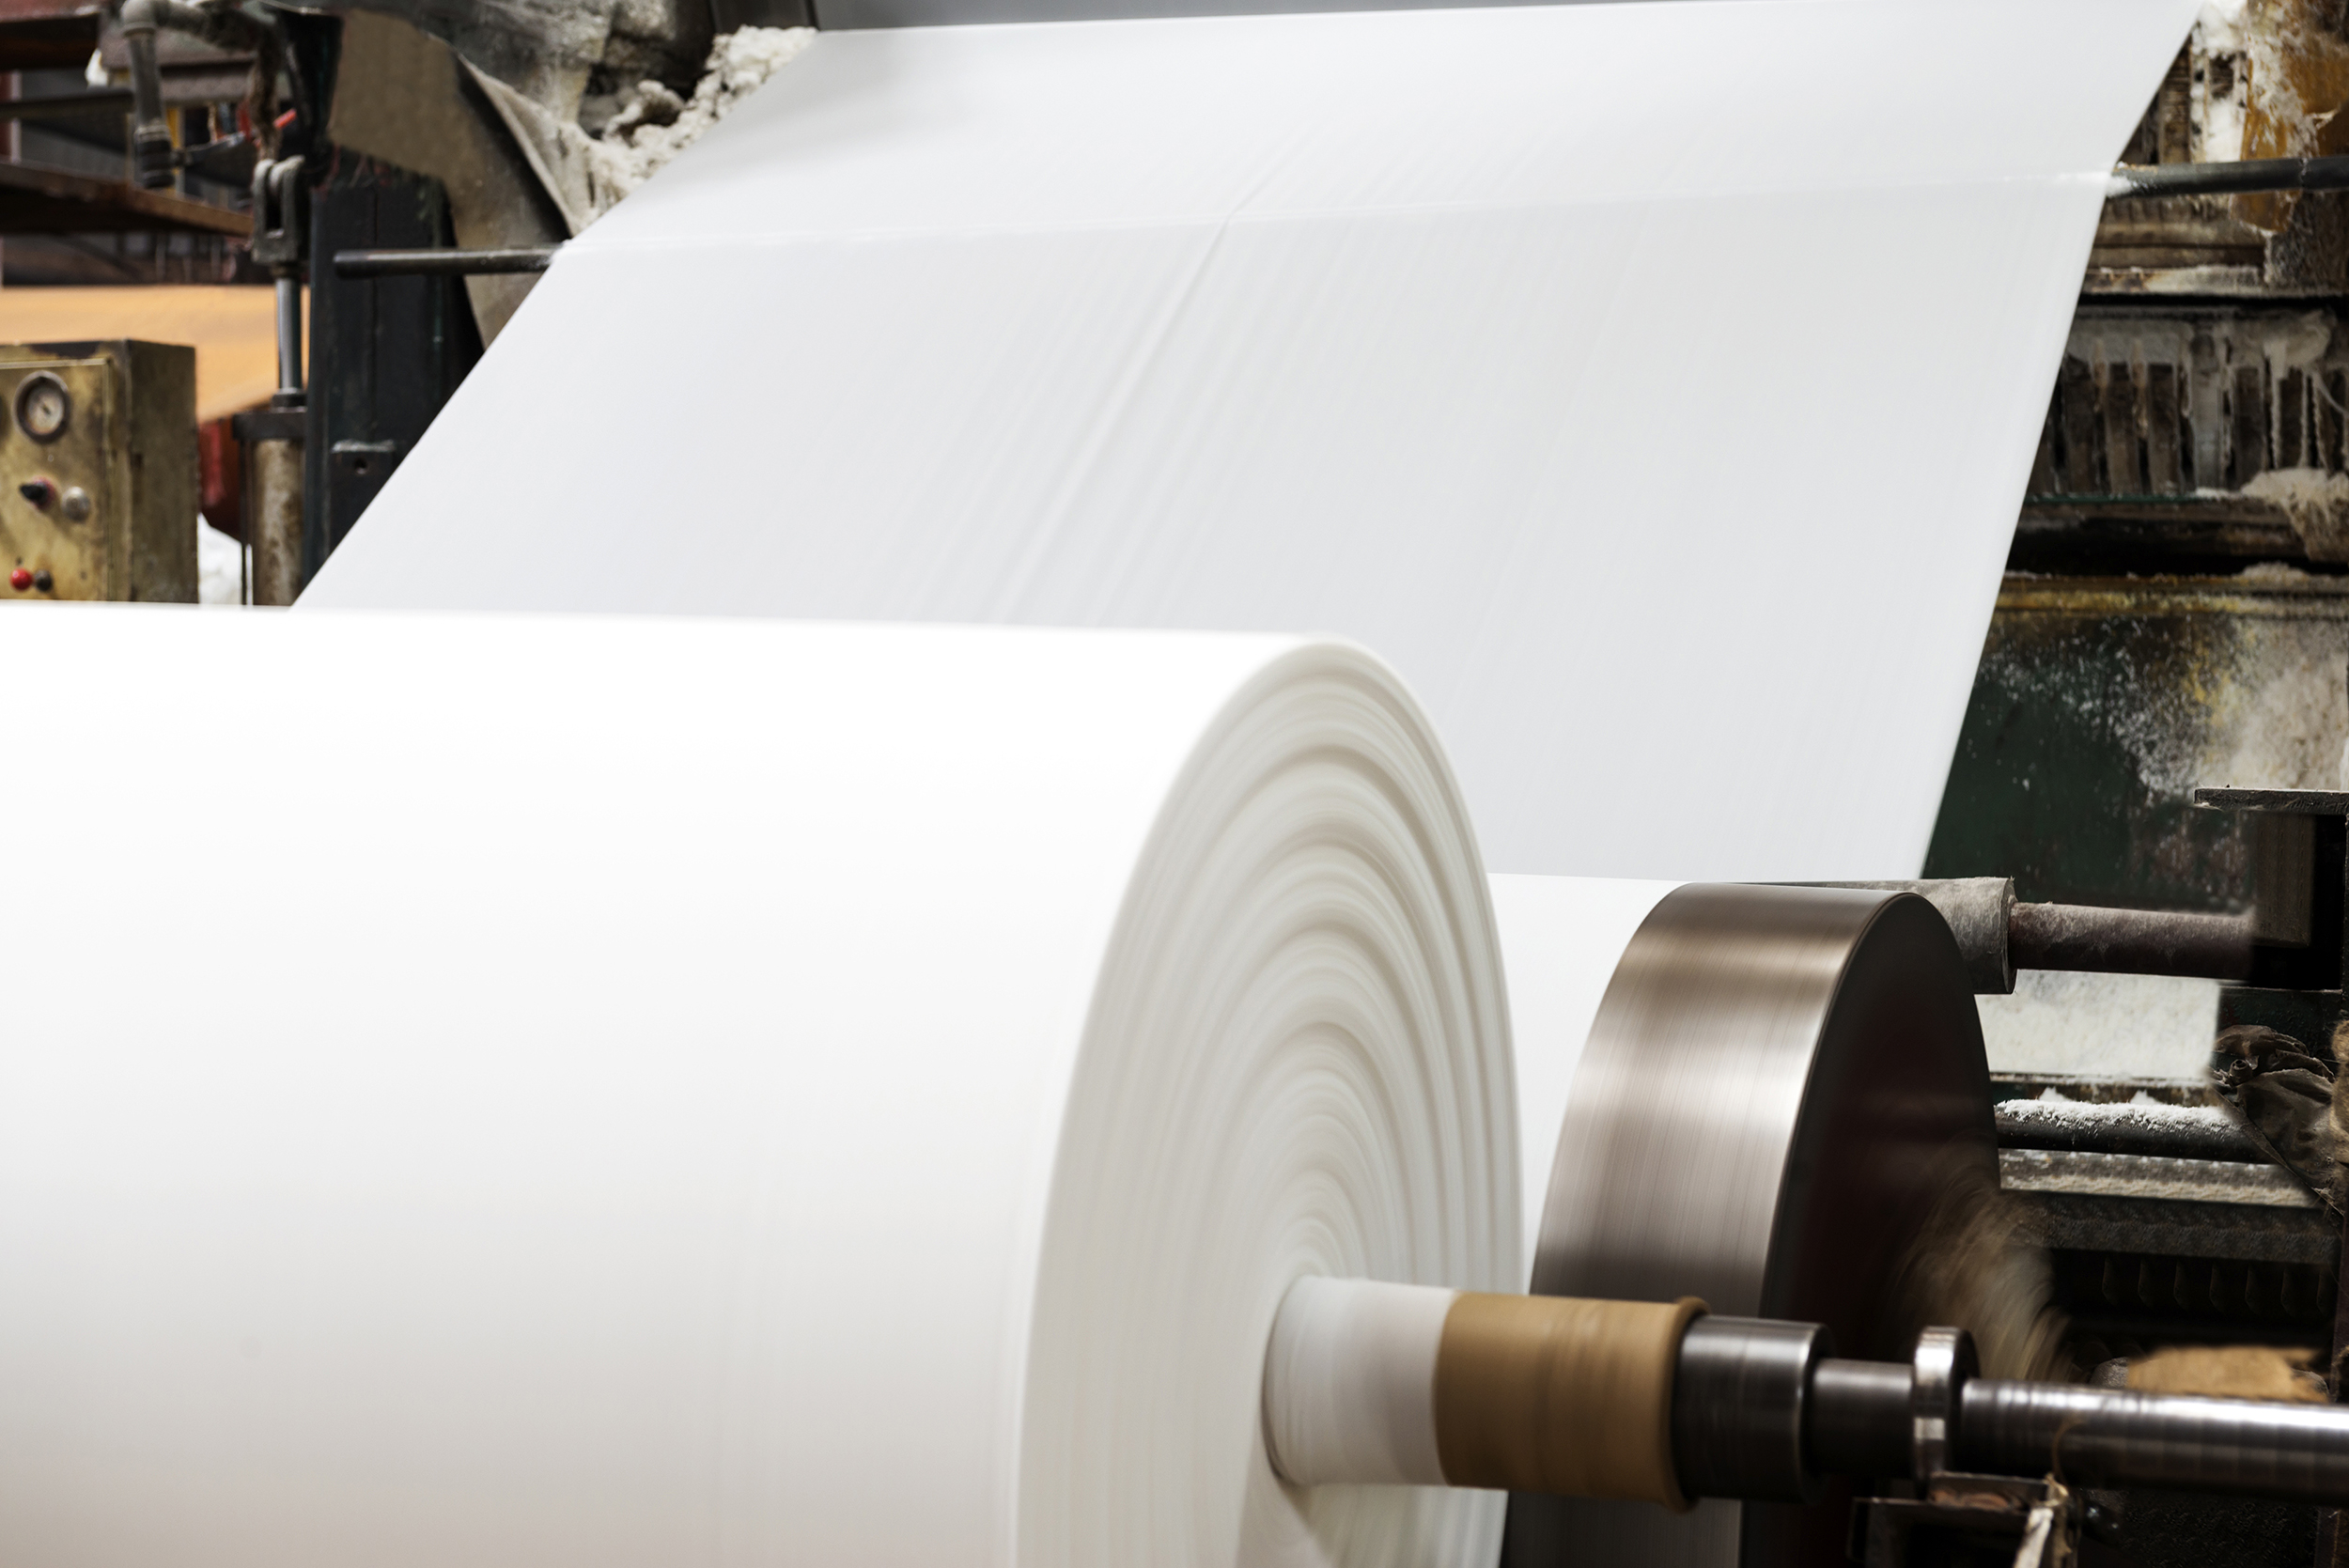 Roll of industrial-sized paper going into a machine